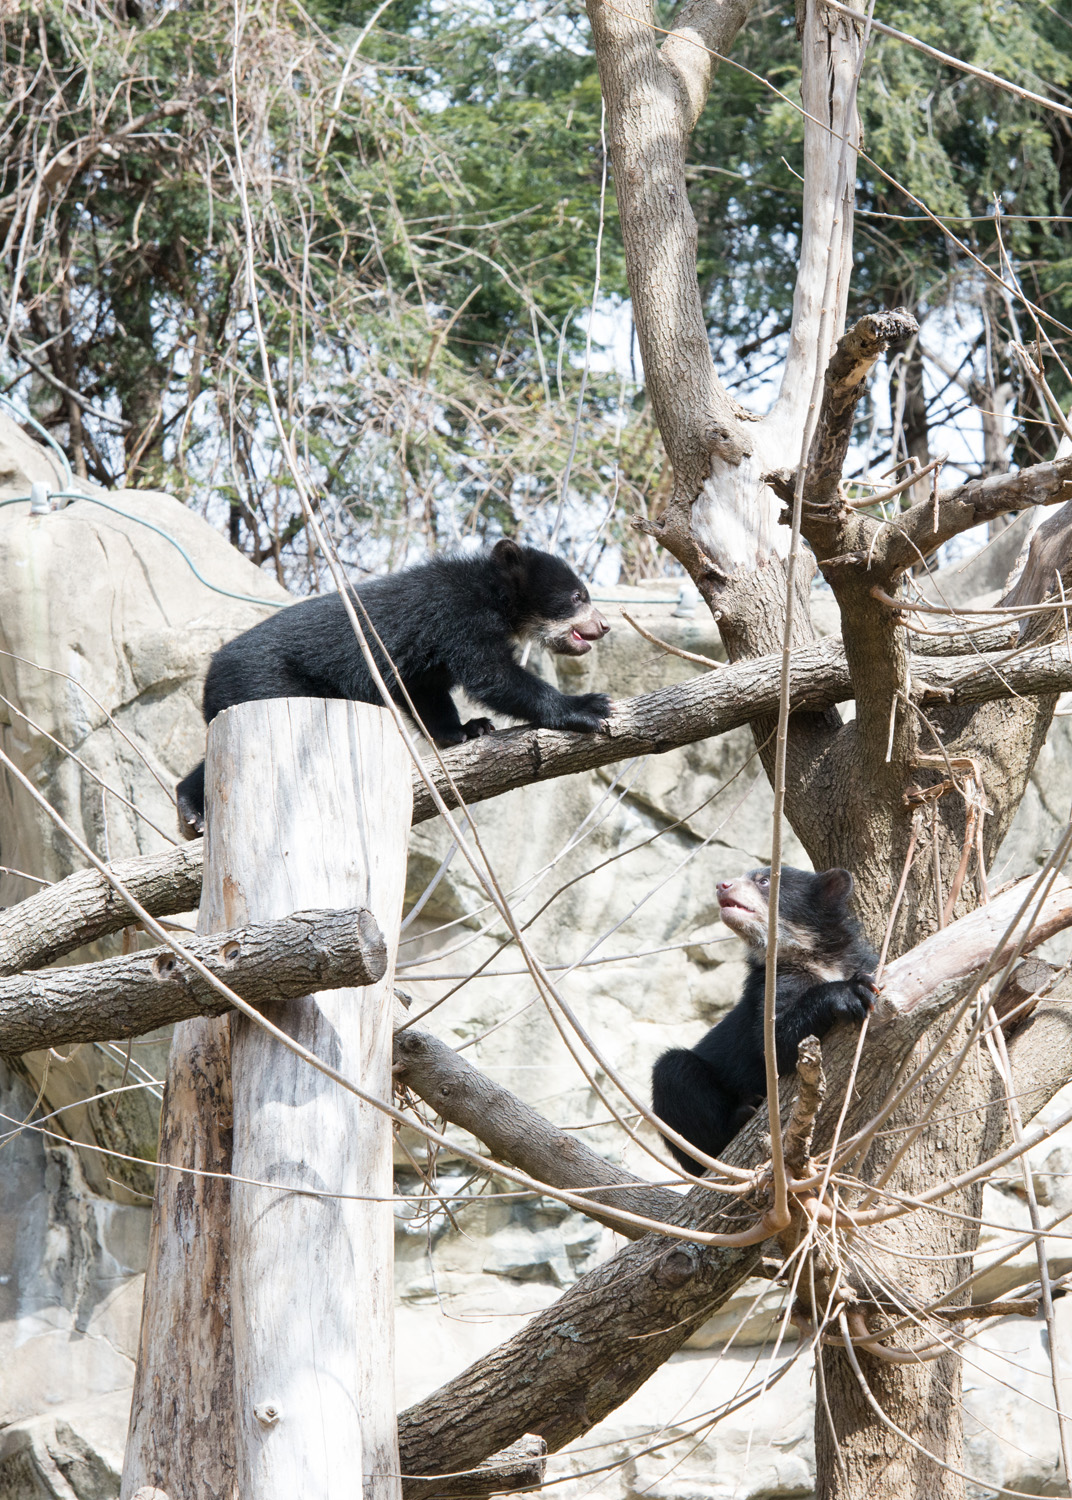 bear cub walks across horizontal branch to other tree in its enclosure